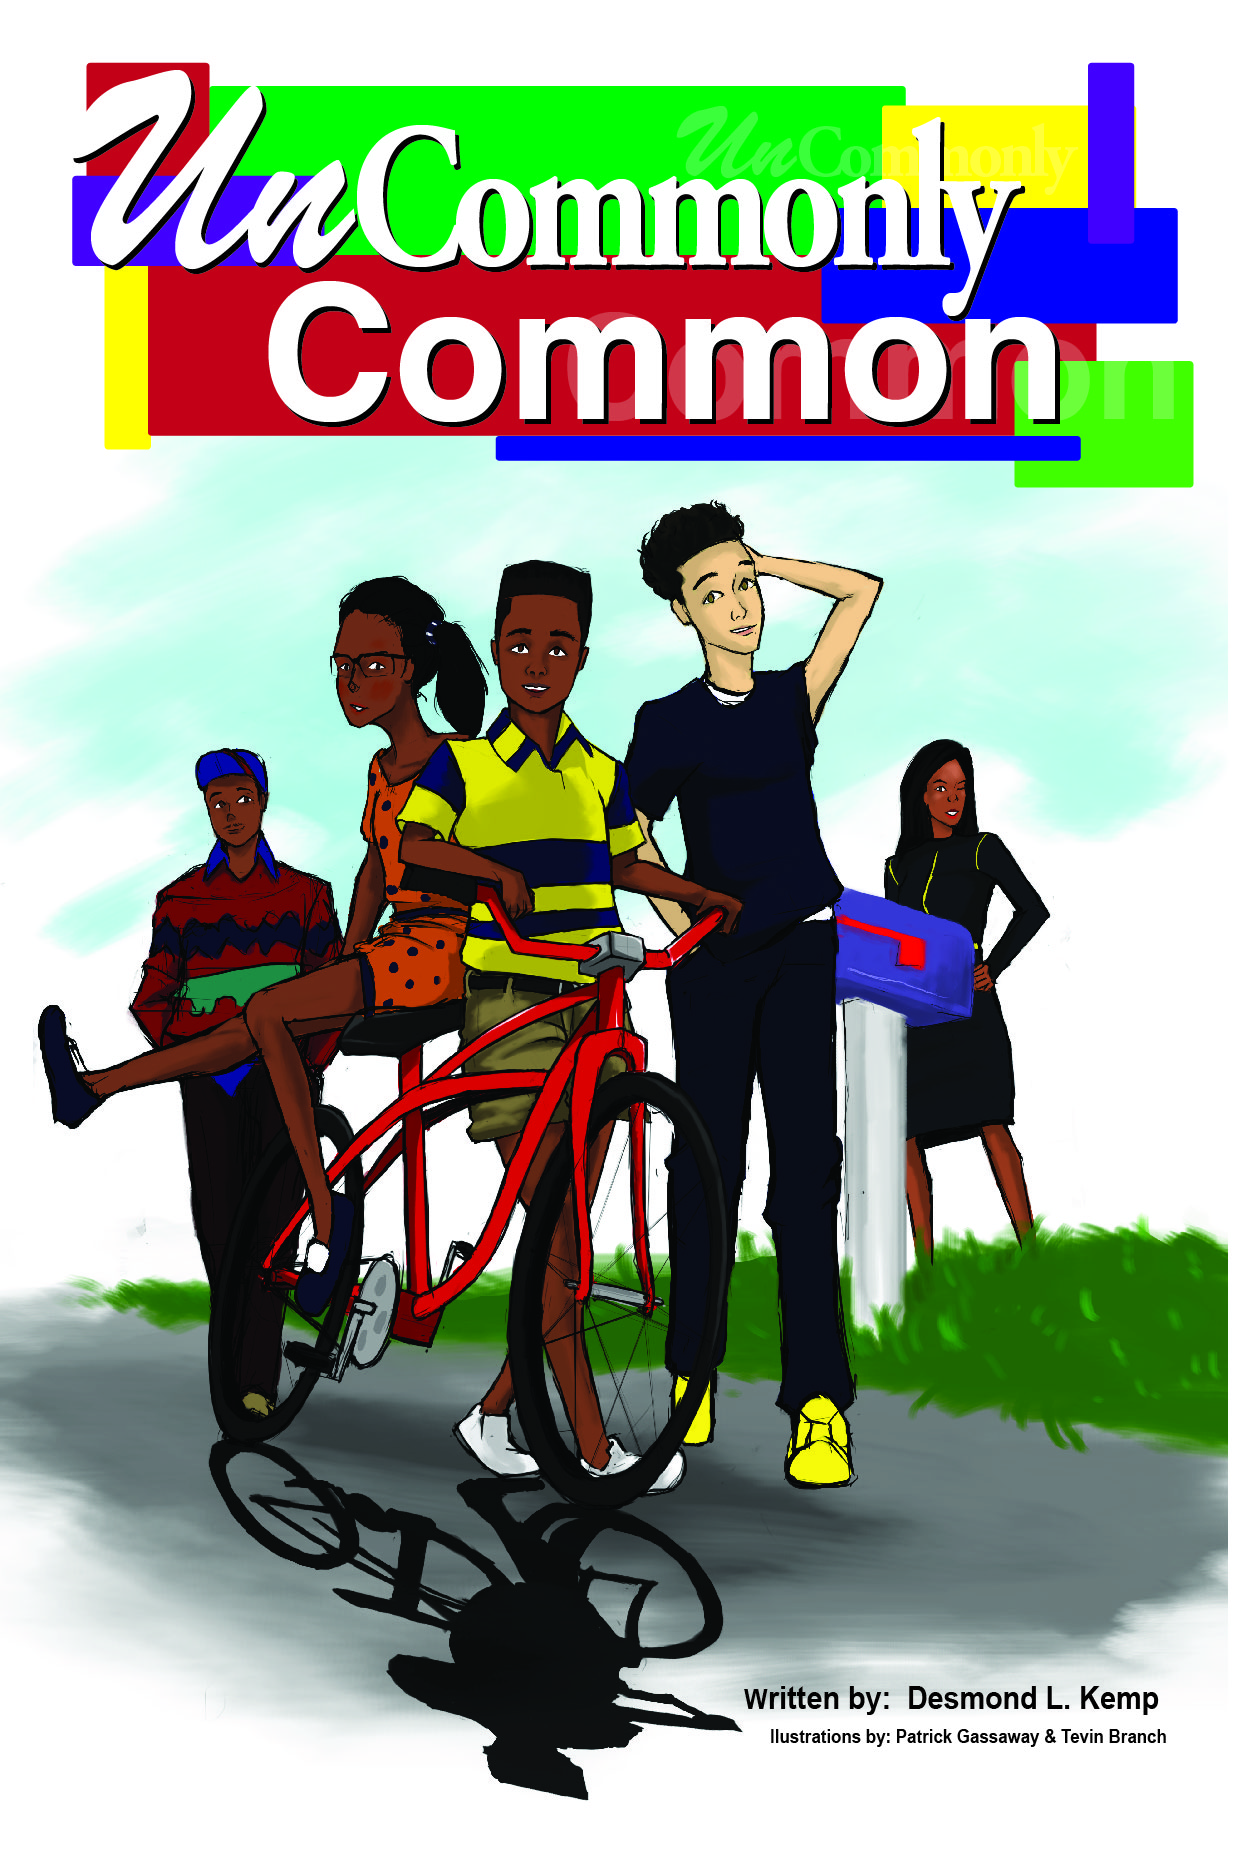 UnCommonly Common_Cover Design_Cover Design 2.jpg